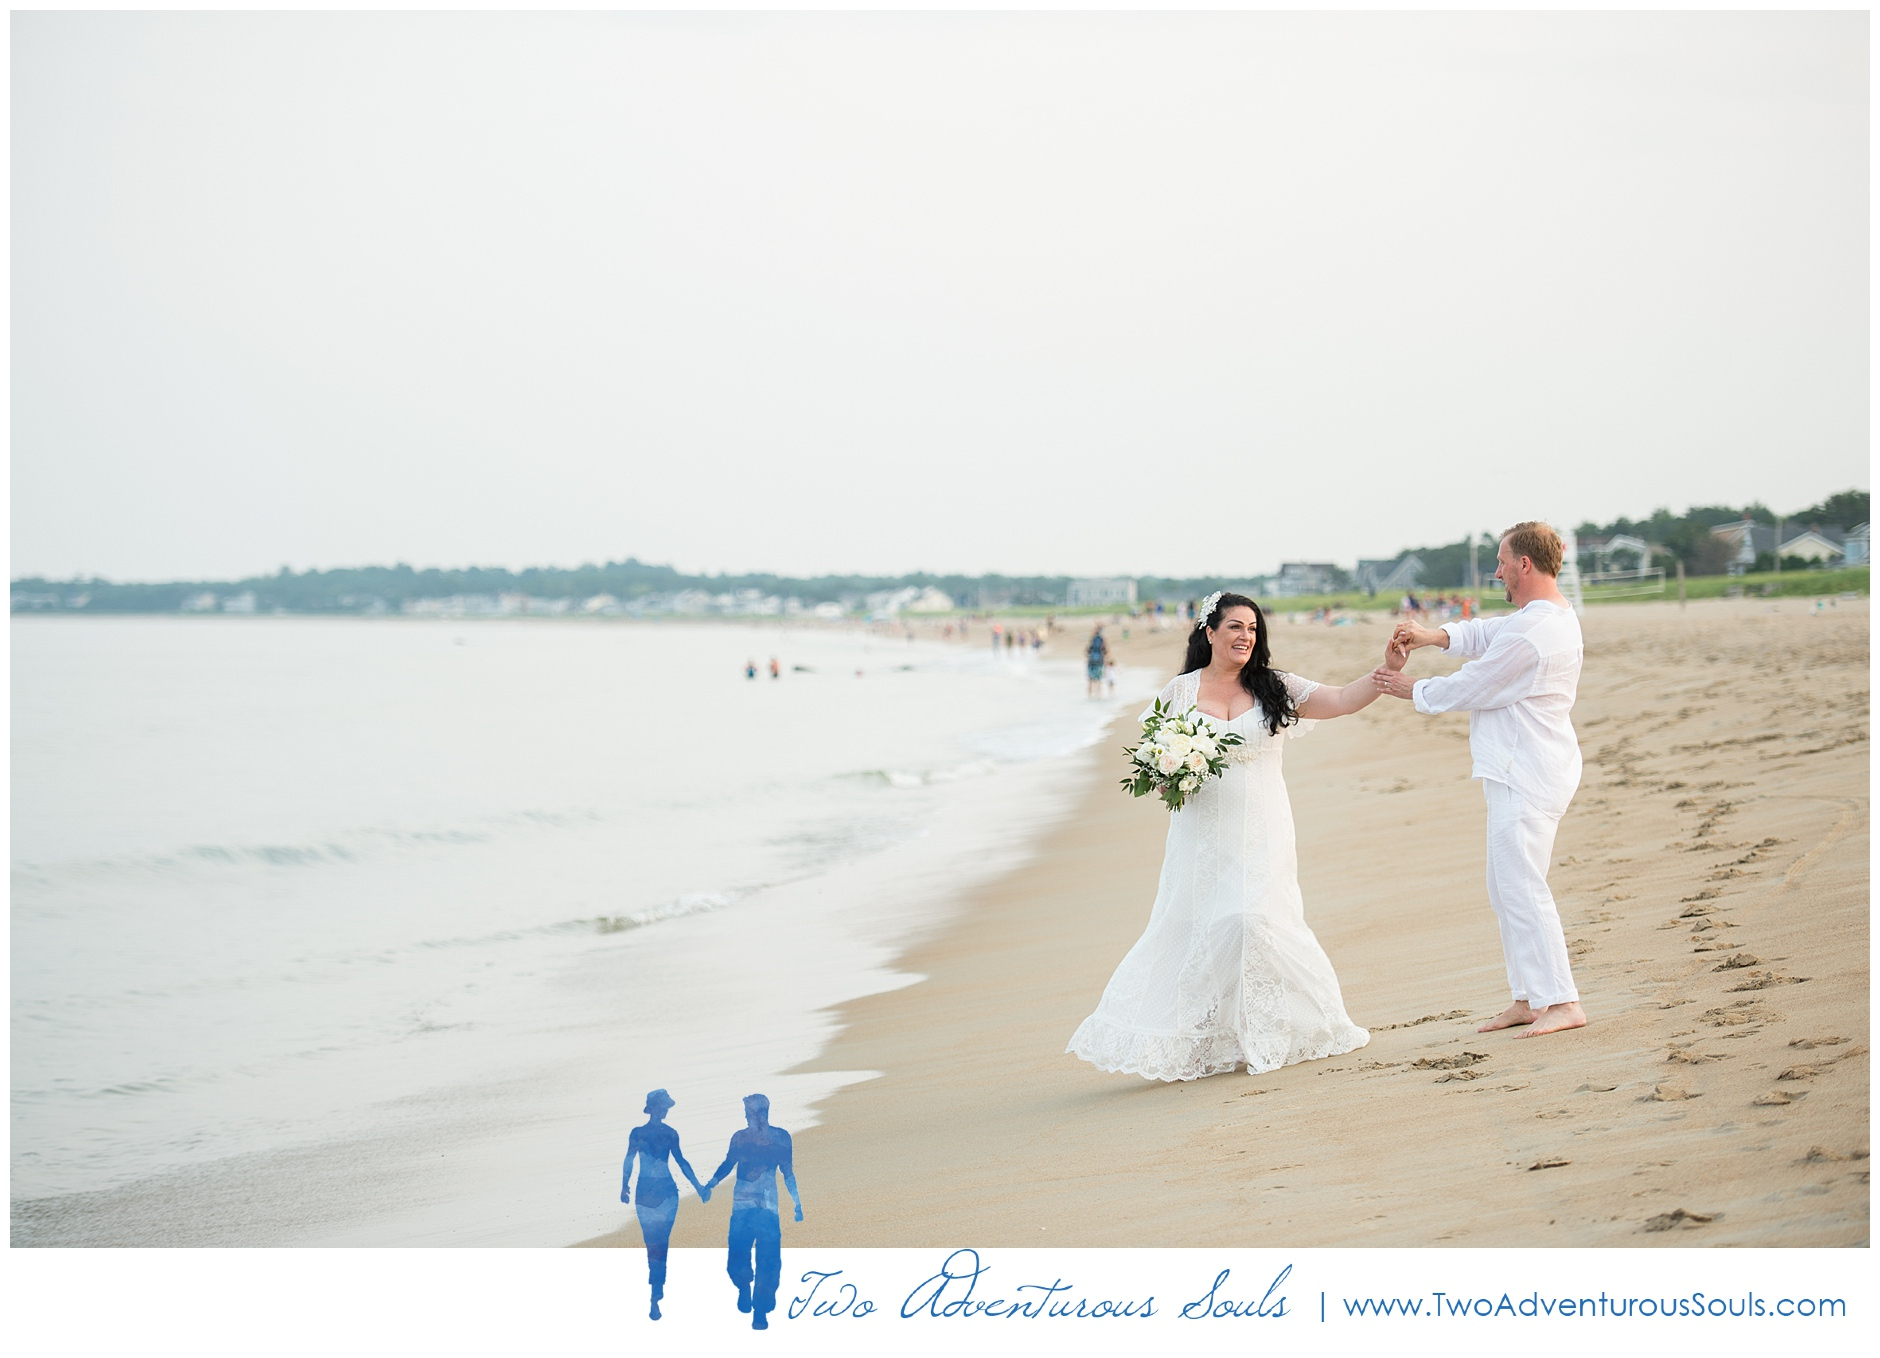 Old Orchard Wedding Photographers, Old Orchard Beach Photographers, Maine Elopement Photographers, Two Adventurous Souls-070919_0016.jpg